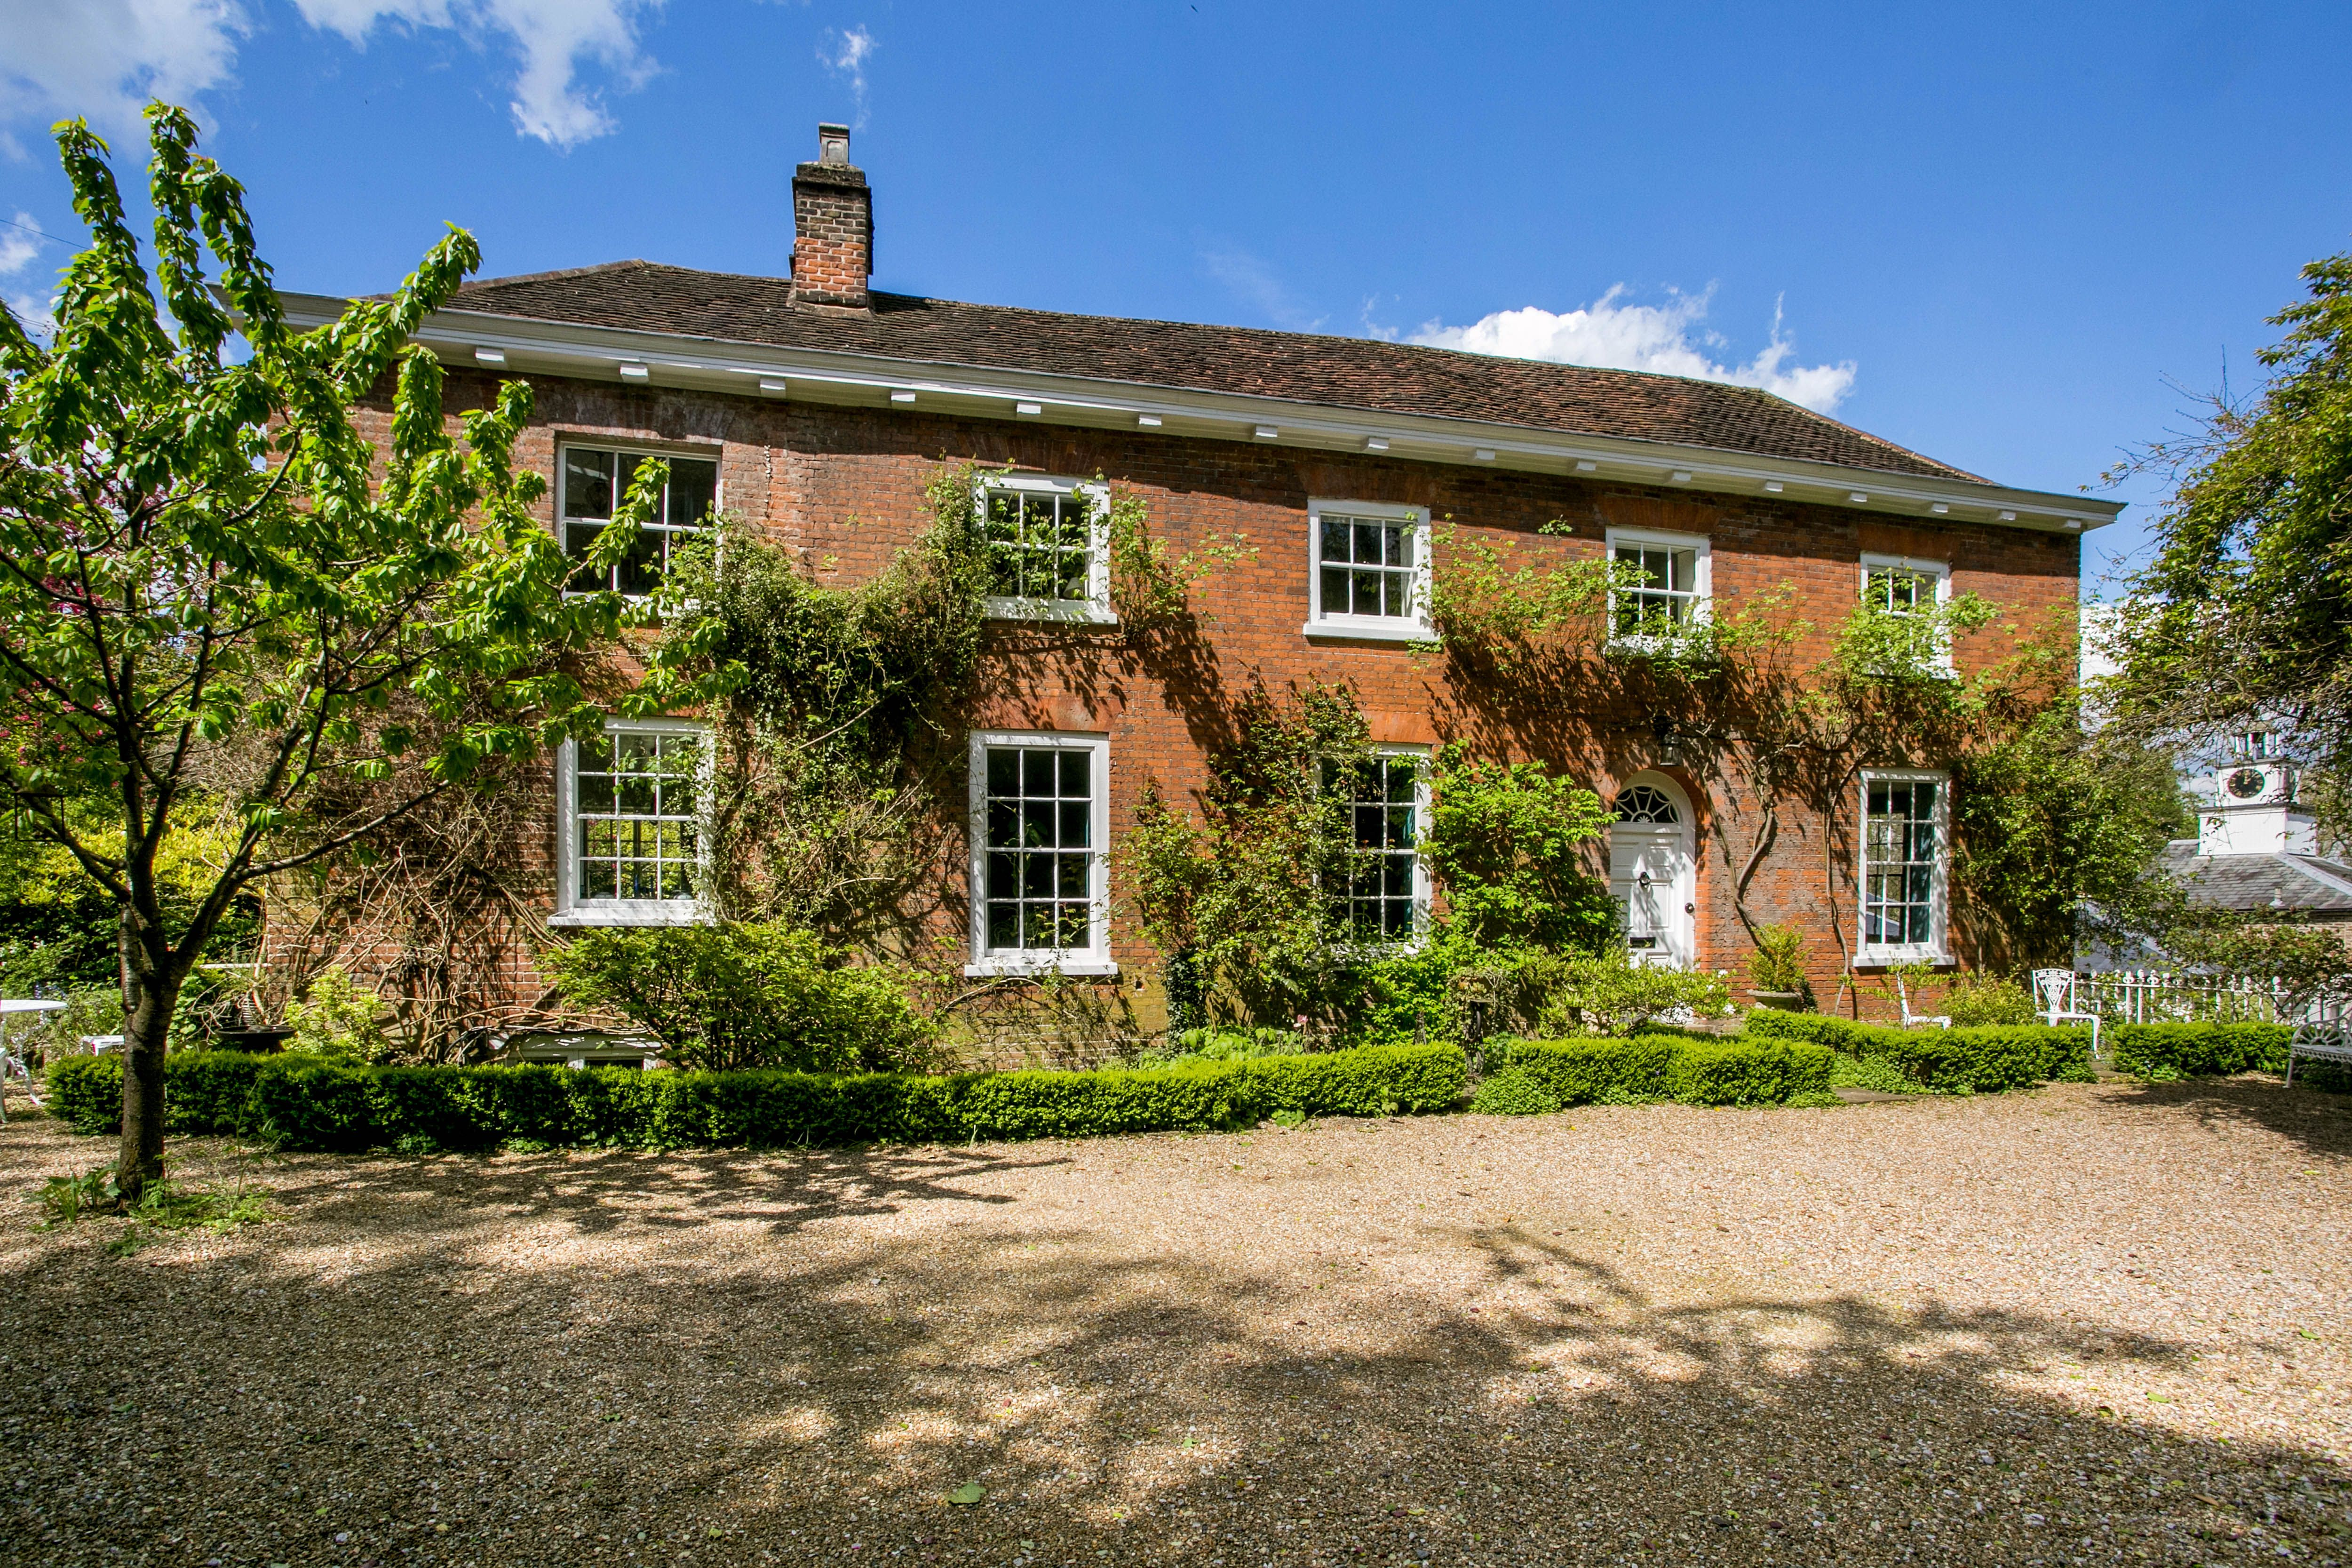 This countryside home once featured in Holby City and Midsomer Murders is up for sale